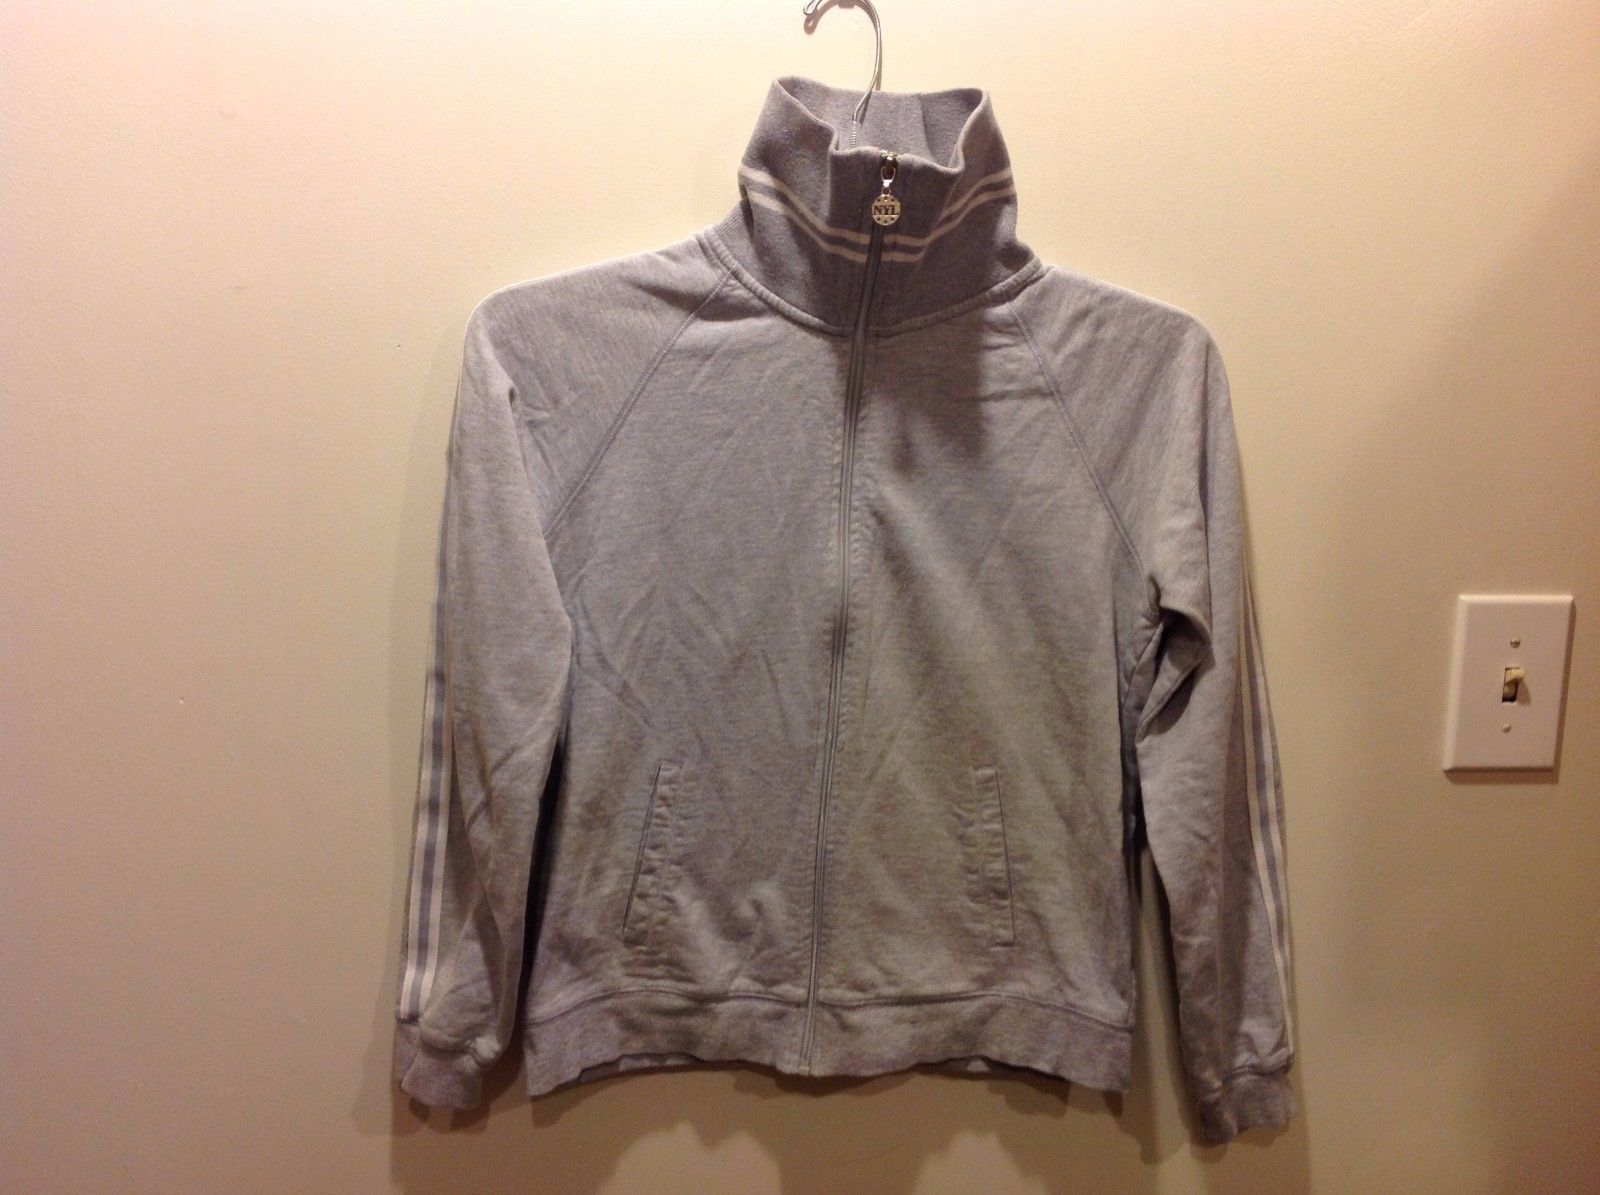 New York Laundry Light Gray Collared Zip Up Tracksuit Sz M